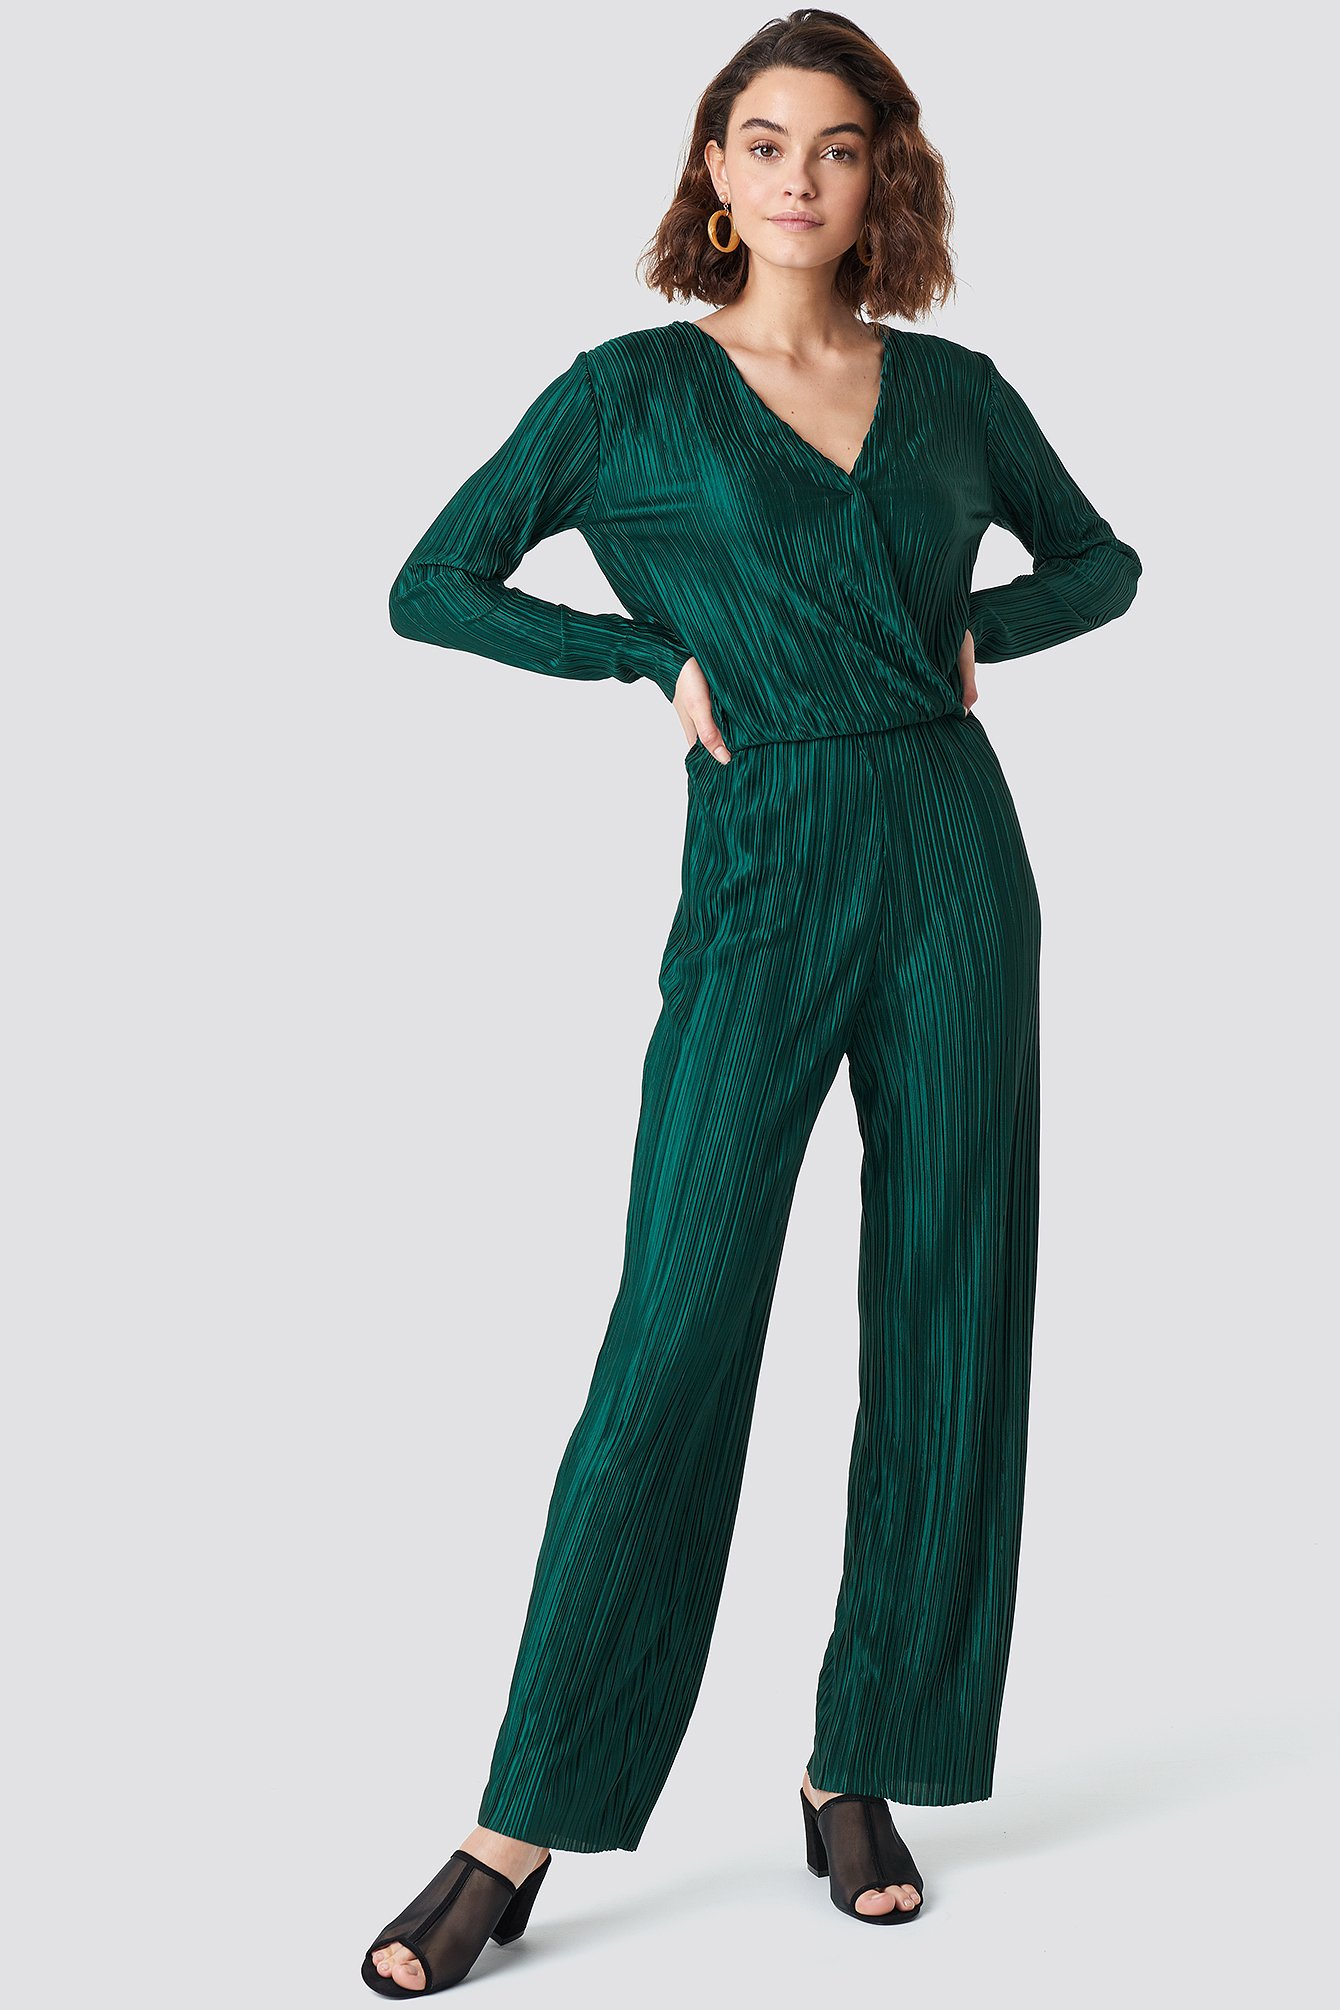 wholesale enjoy cheap price coupon codes Pleated Jumpsuit